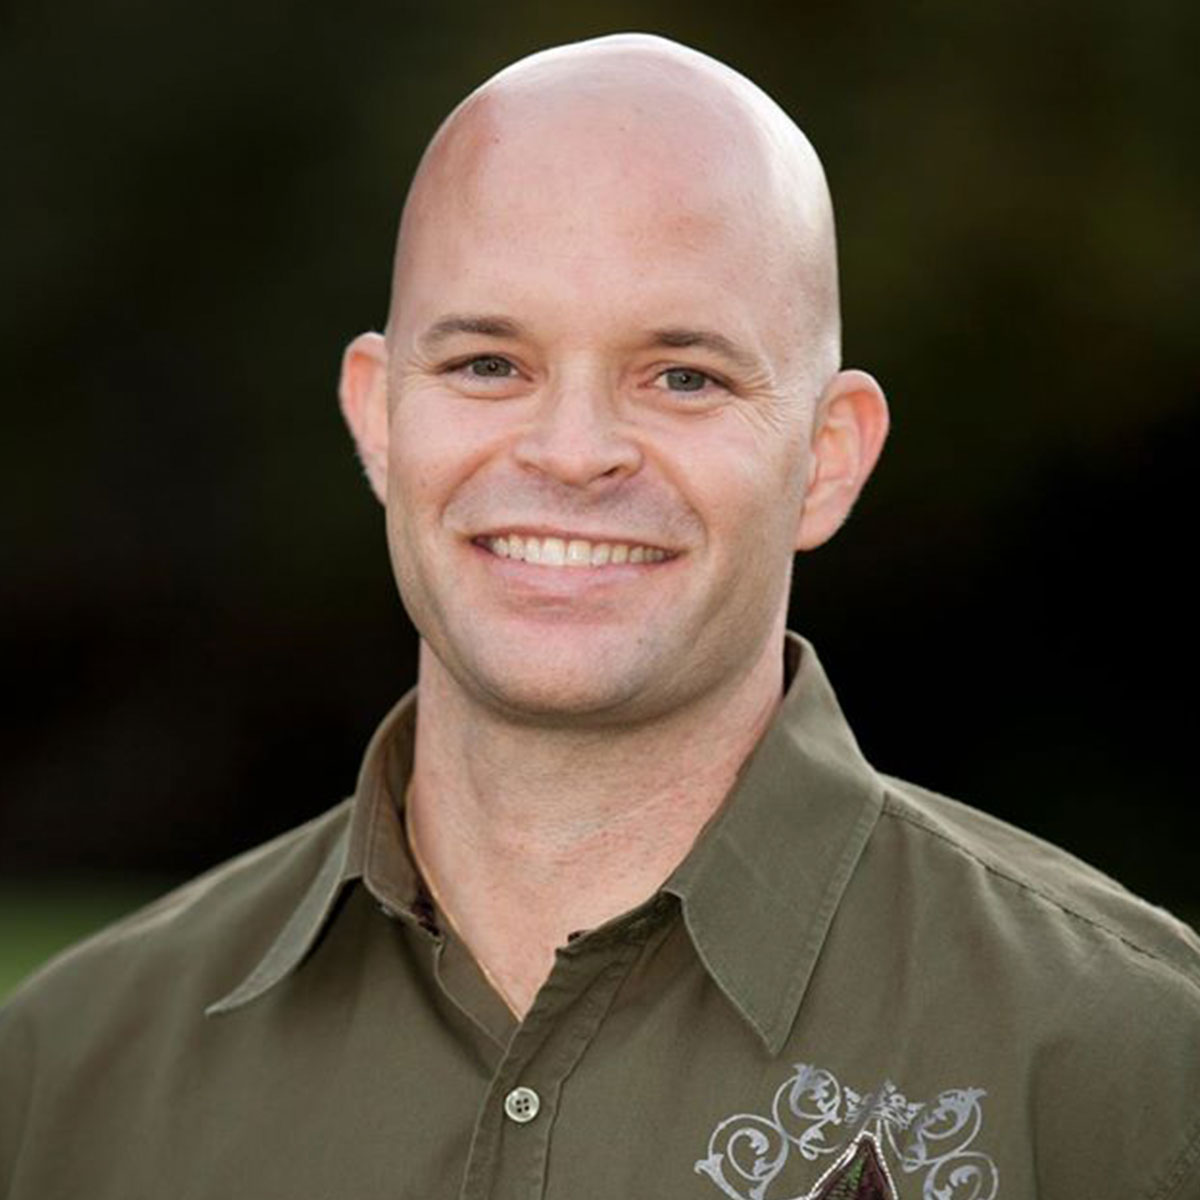 Global Academy of Coaching - Professors, Sean Smith